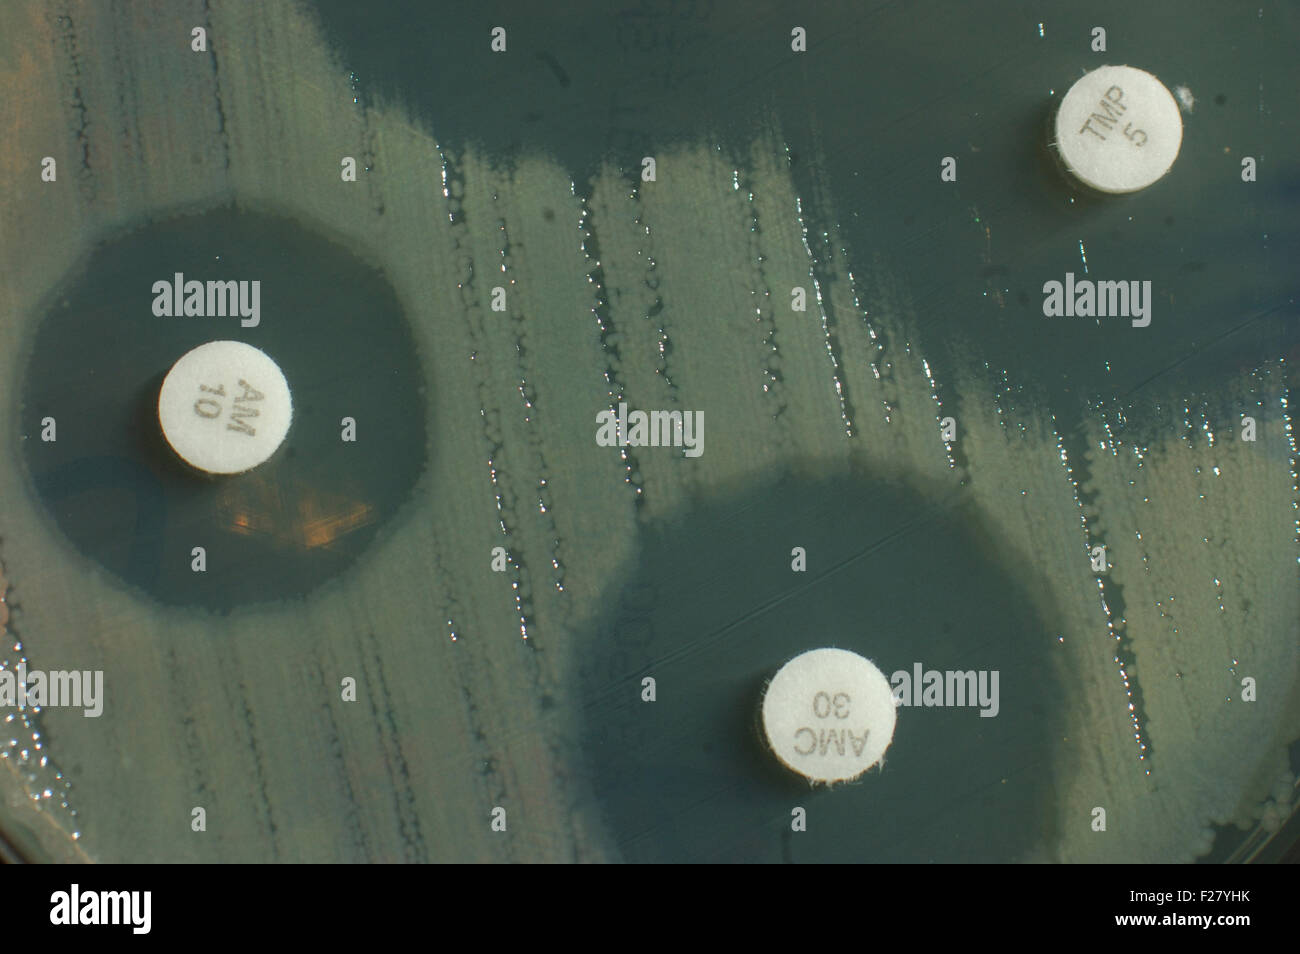 petri dish with antibiotic sensitivity discs showing inhibition zones for bacterial colonies Stock Photo